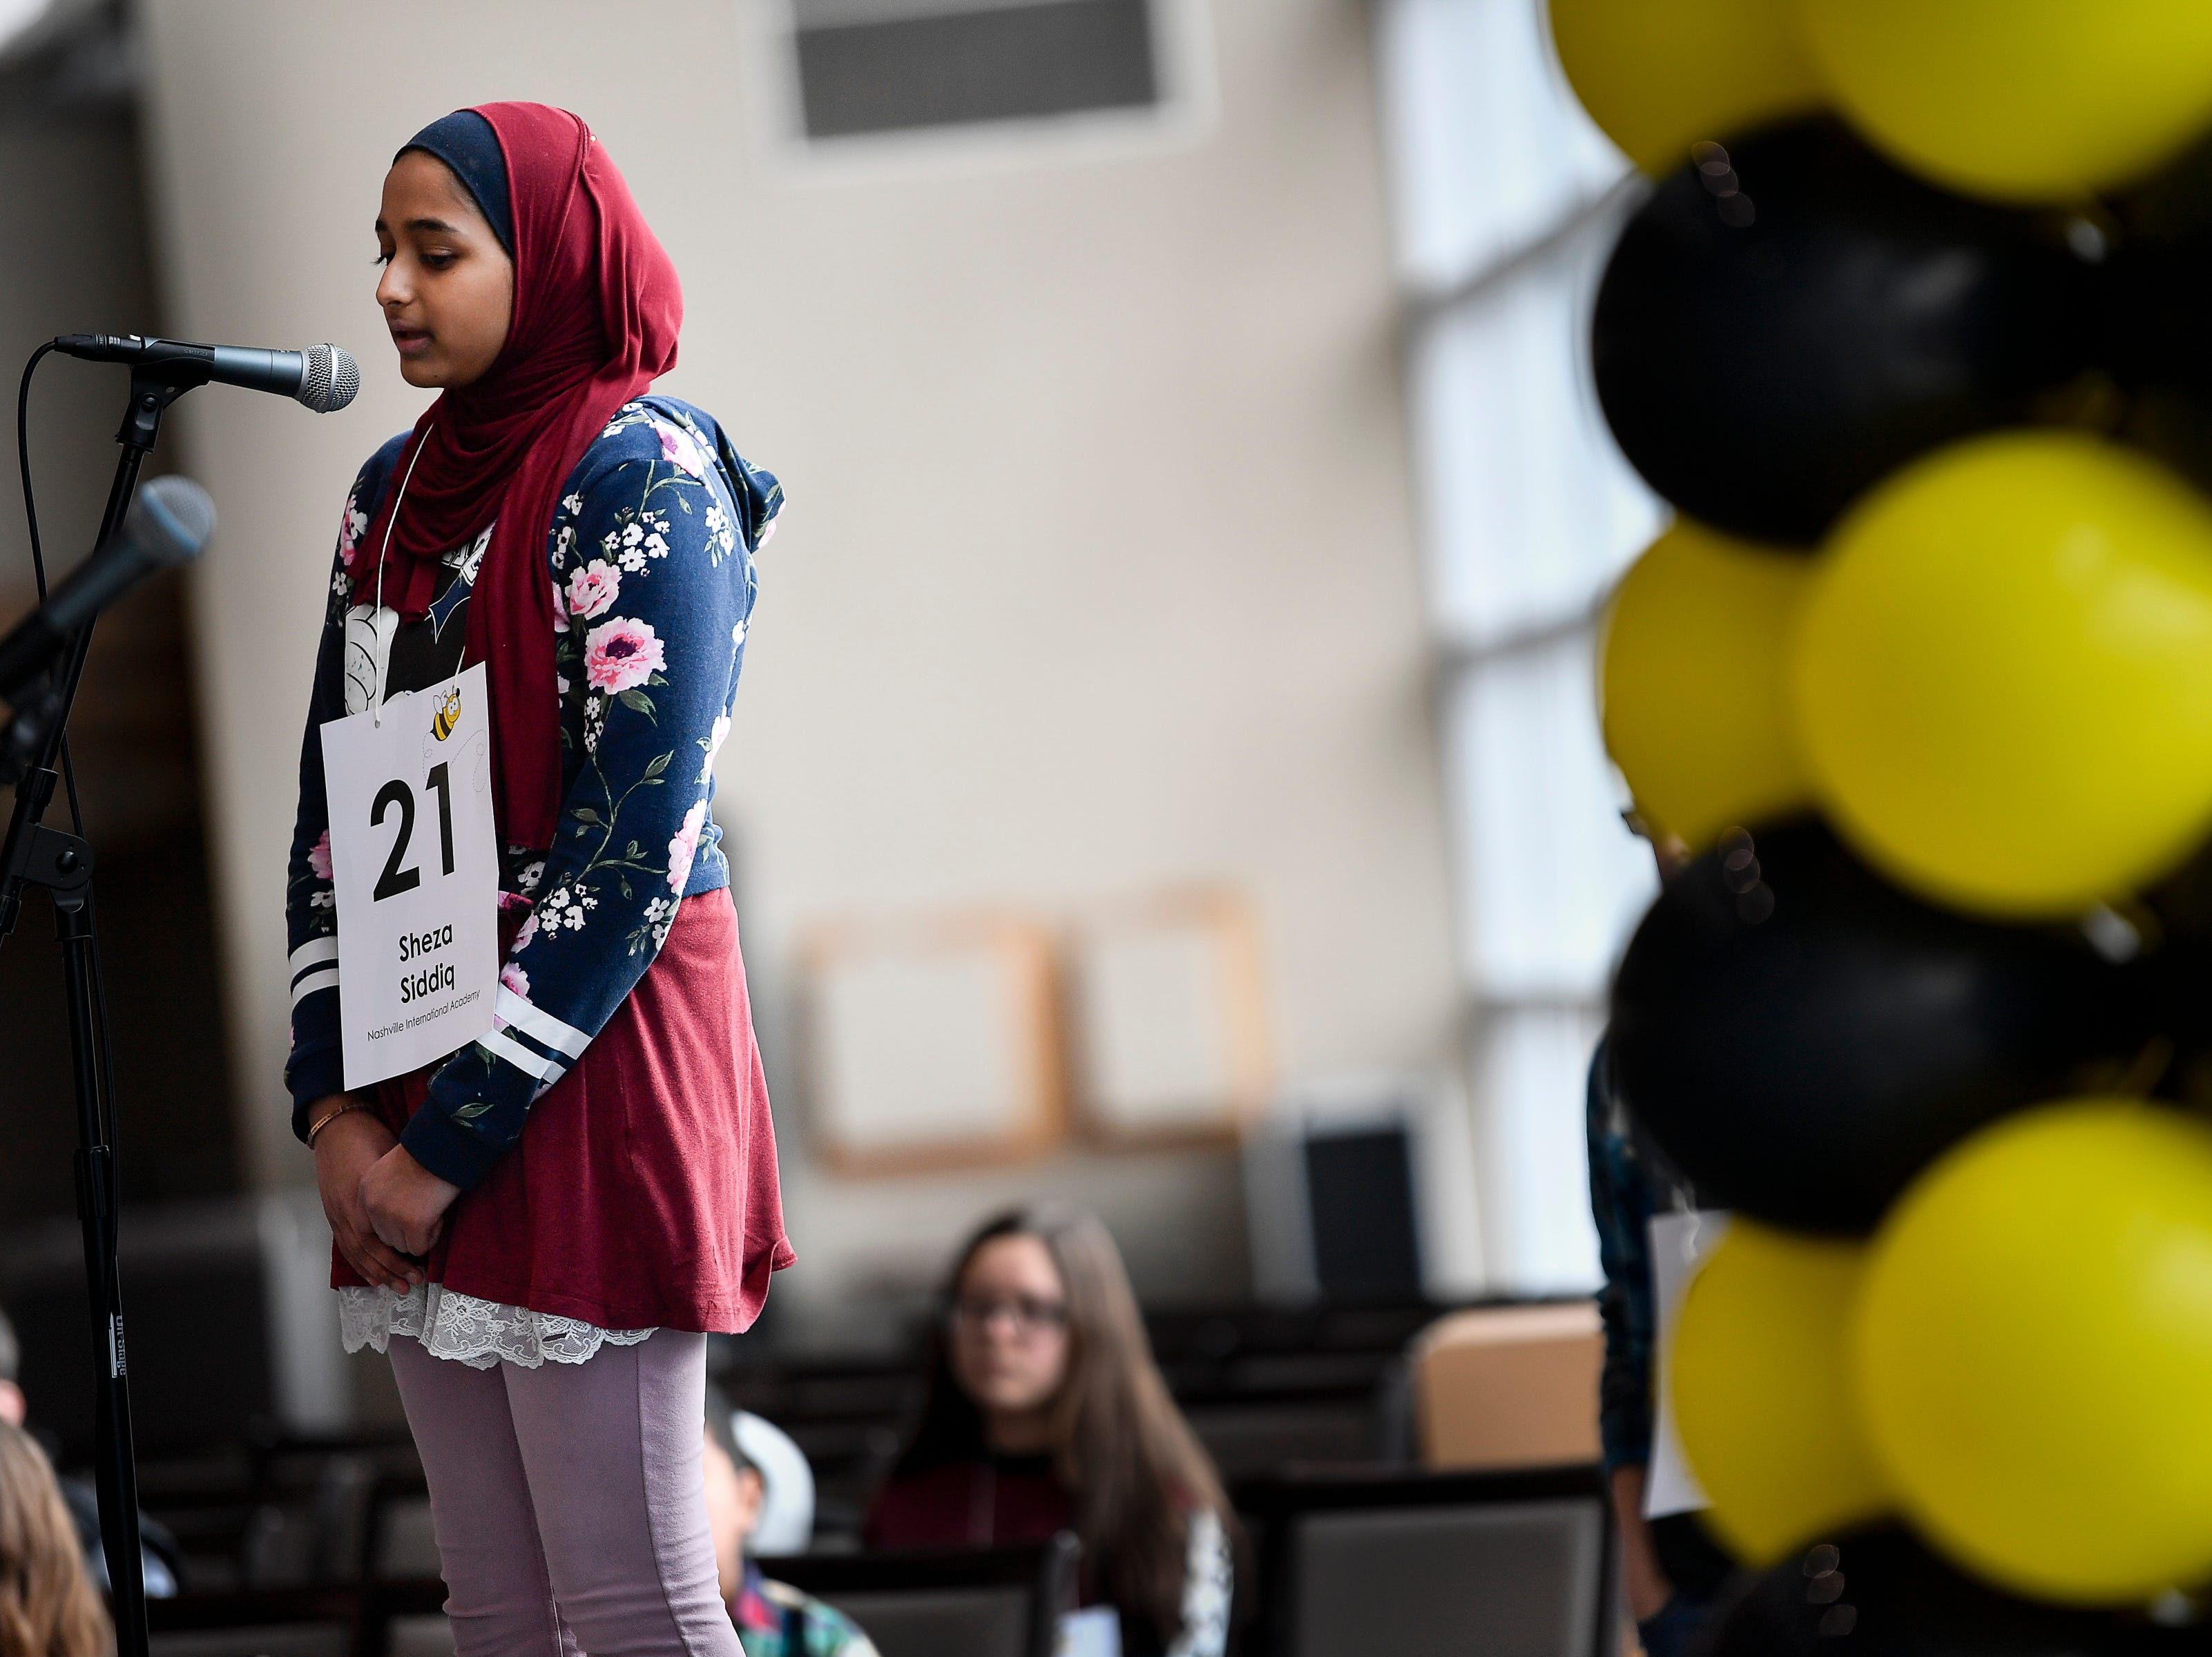 Sheza Shiddiq competes in the Tennessee Titans Regional Spelling Bee at Nissan Stadium Saturday, Feb. 16, 2019 in Nashville, Tenn.